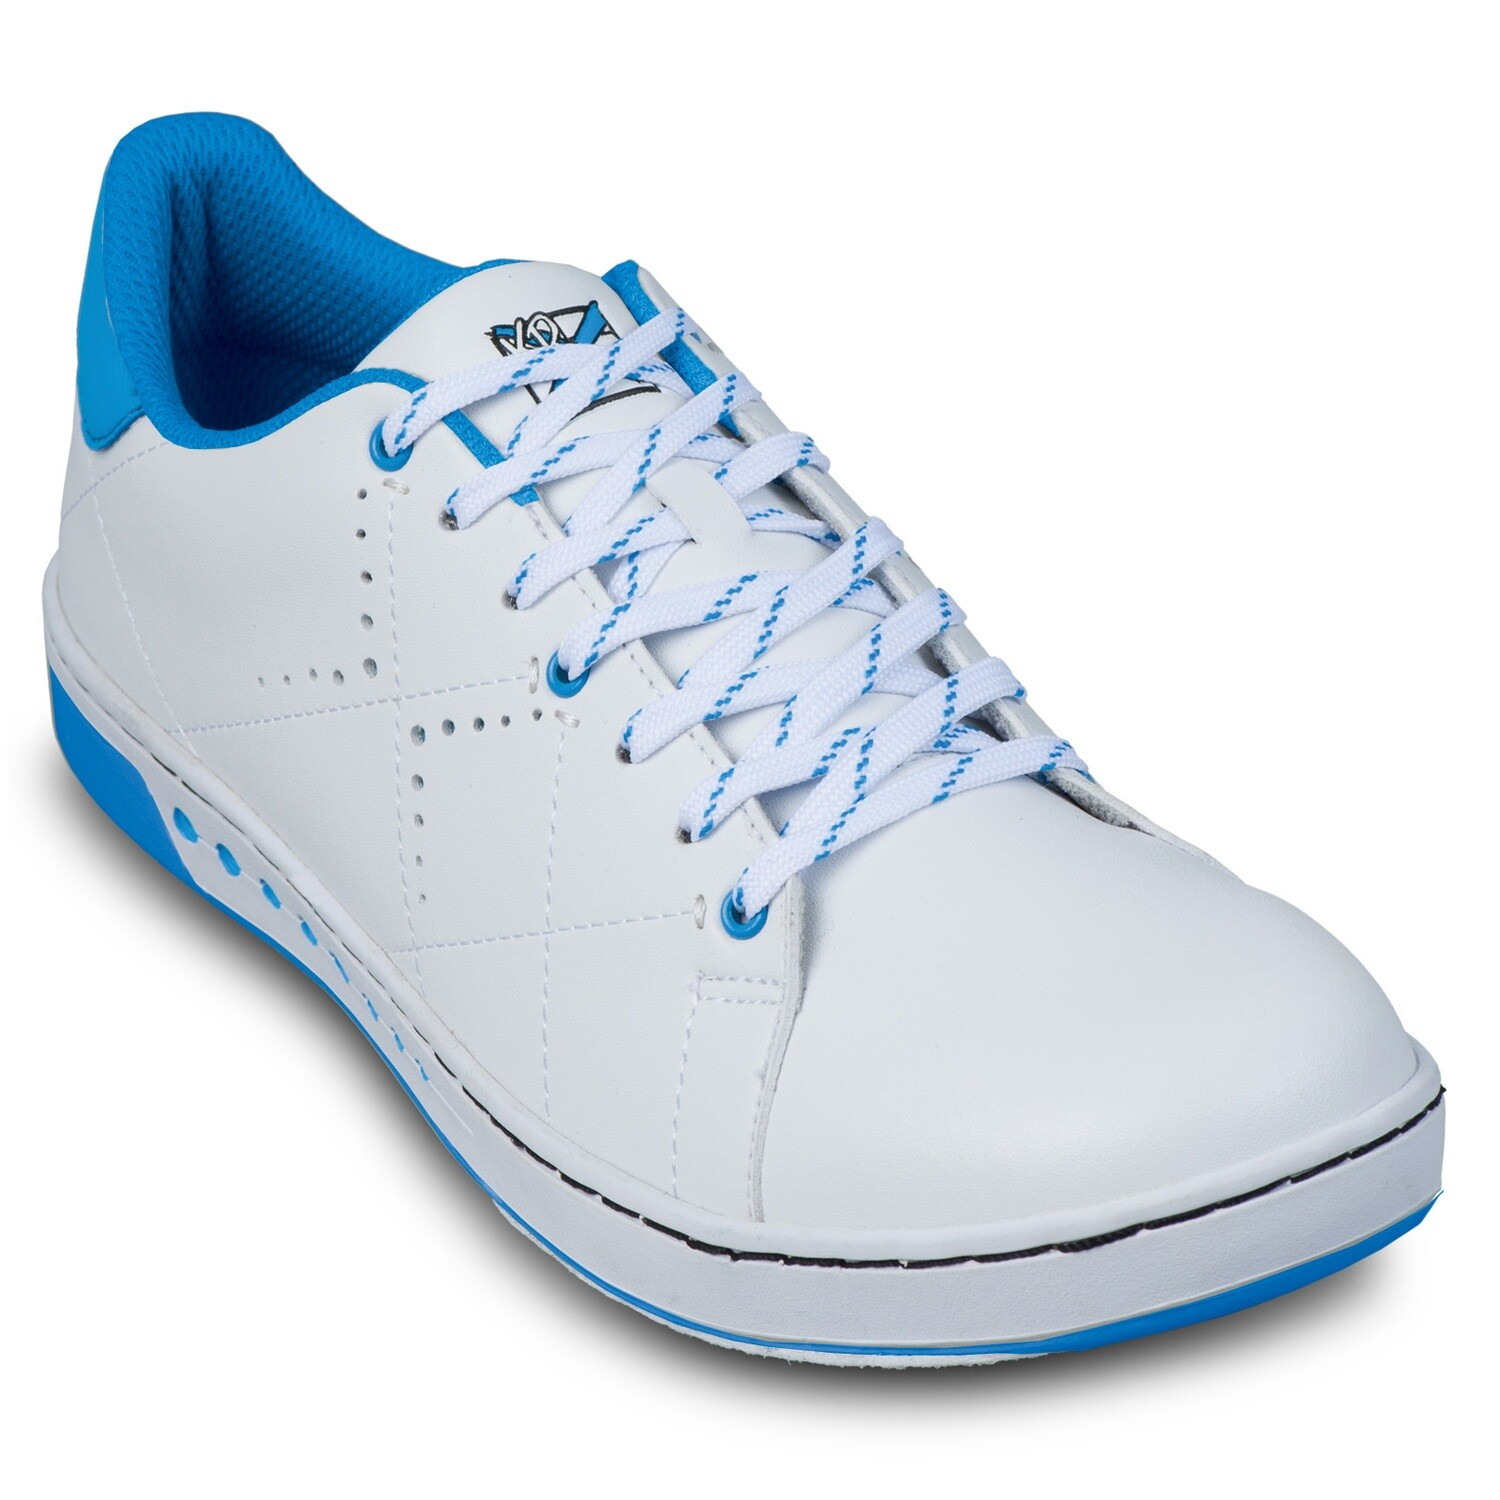 KR Strikeforce Gem White/Blue Womens Bowling Shoes